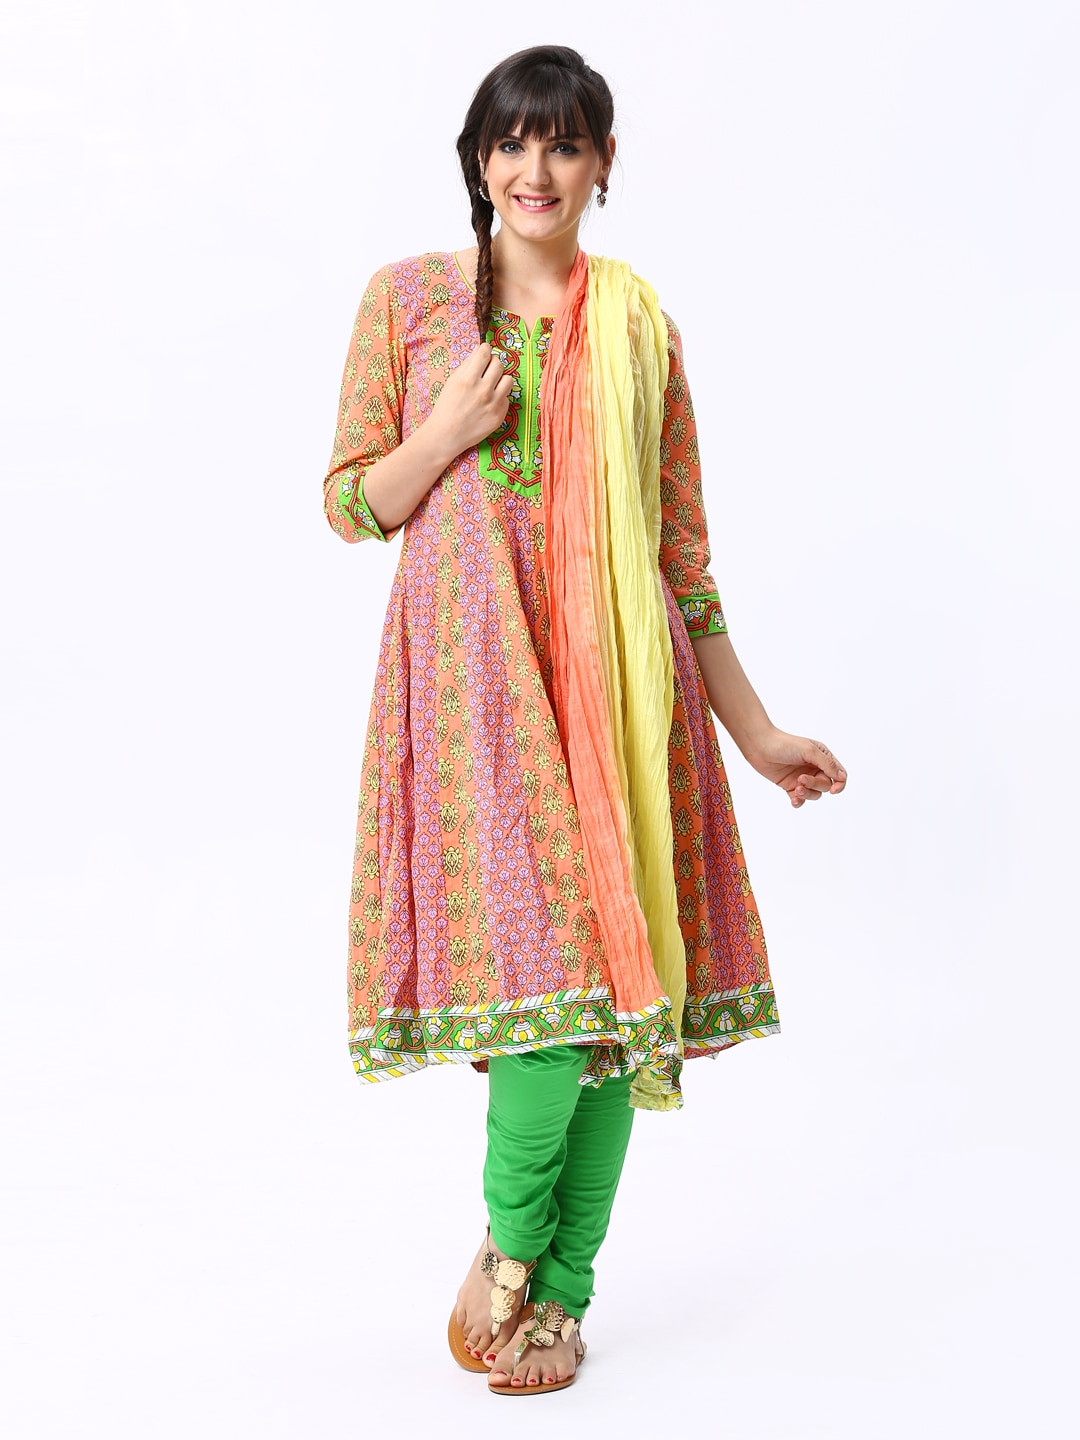 Rain & Rainbow Women Peach & Green Coloured Printed Anarkali Churidar Kurta with Dupatta (multicolor)